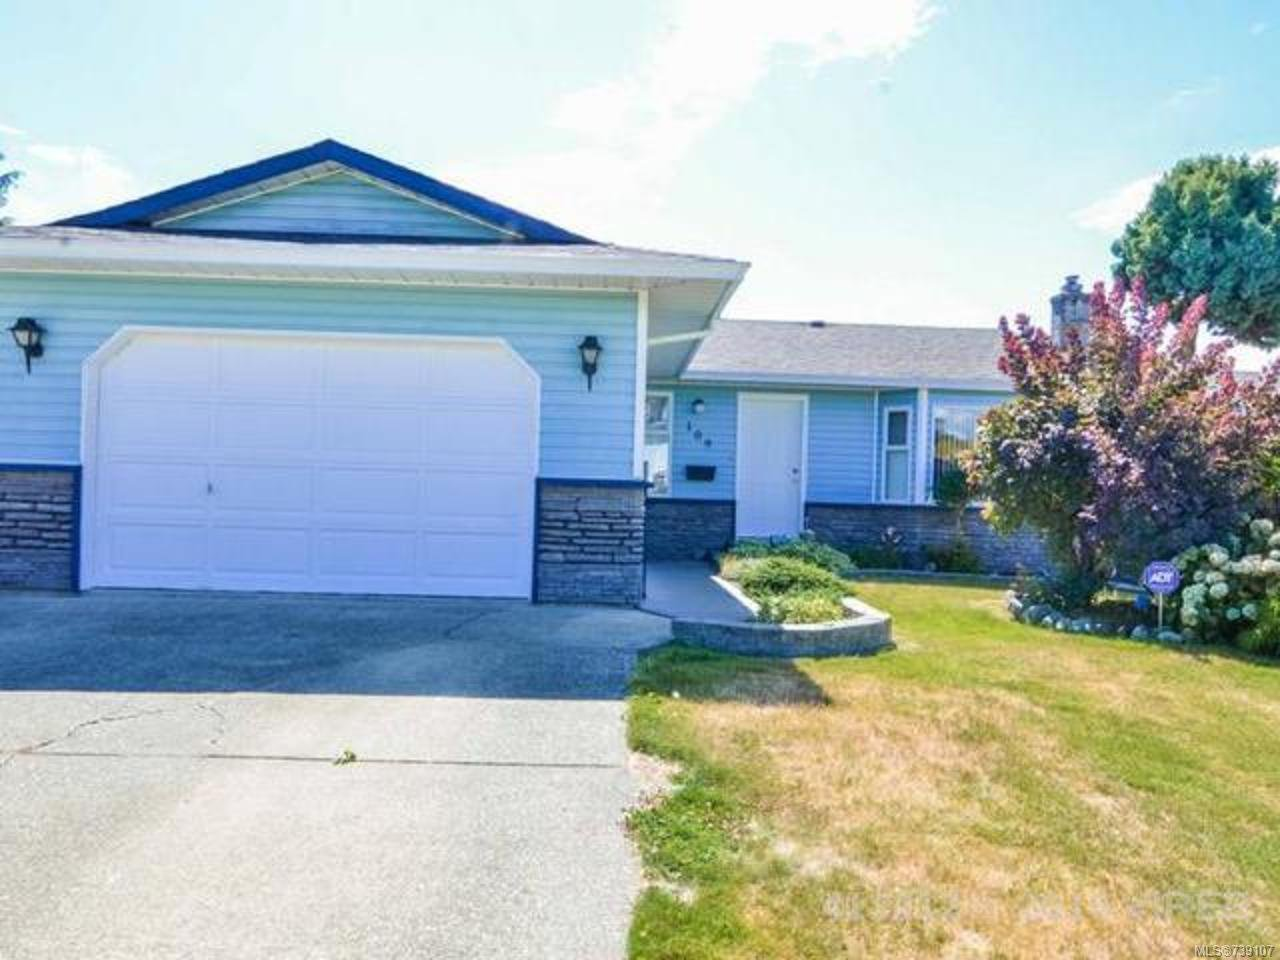 Main Photo: 109 REEF Crescent in CAMPBELL RIVER: CR Willow Point House for sale (Campbell River)  : MLS®# 739107